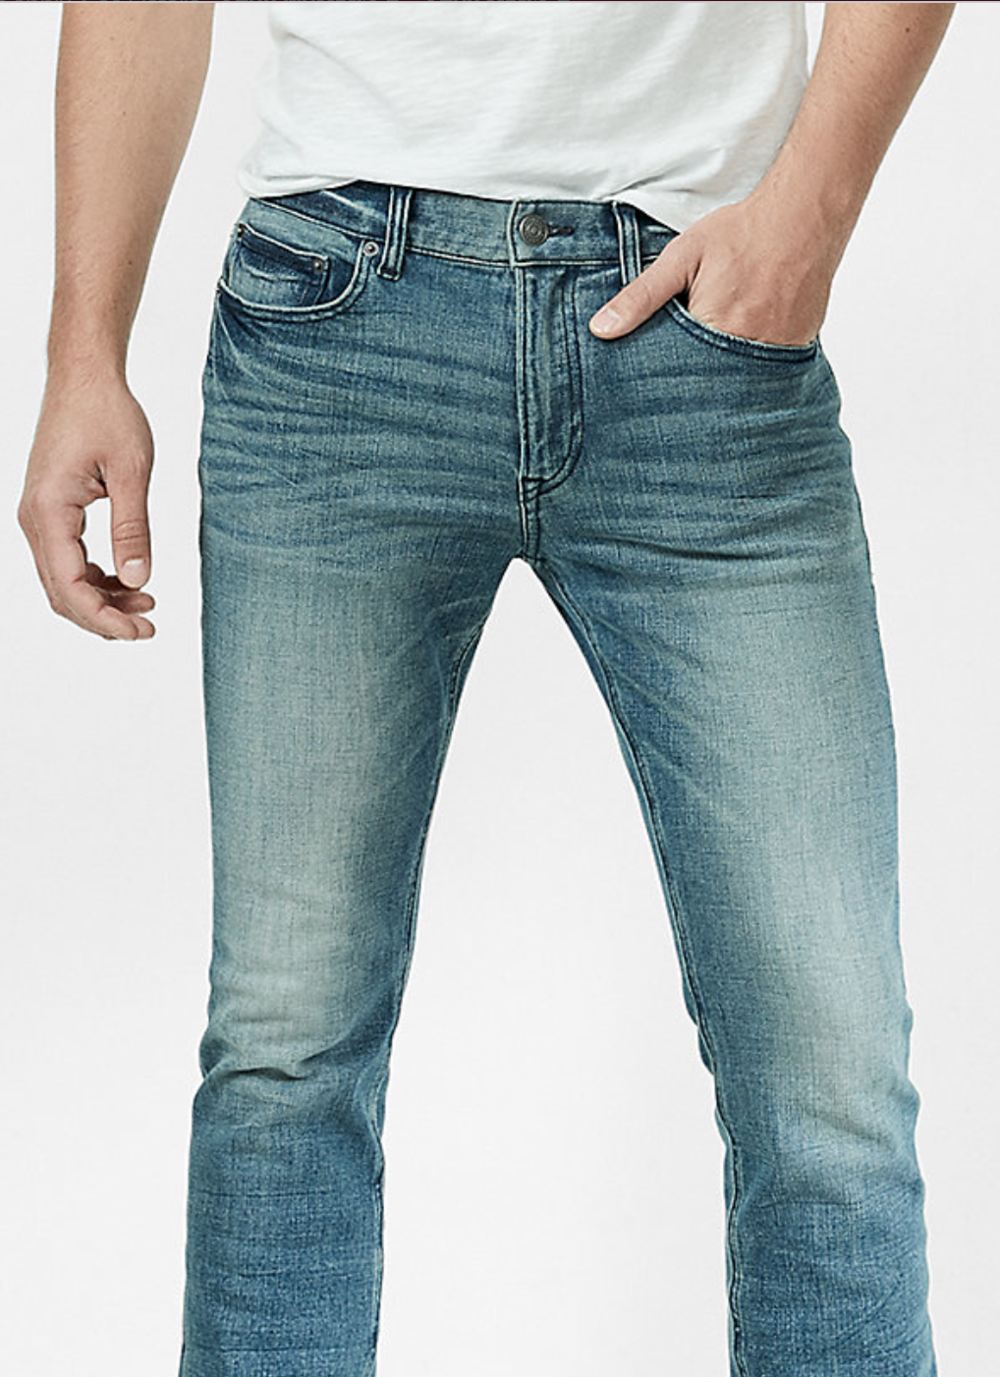 Slim Medium Wash 4 Way Stretch Jeans, Size: 29/32 $52.80